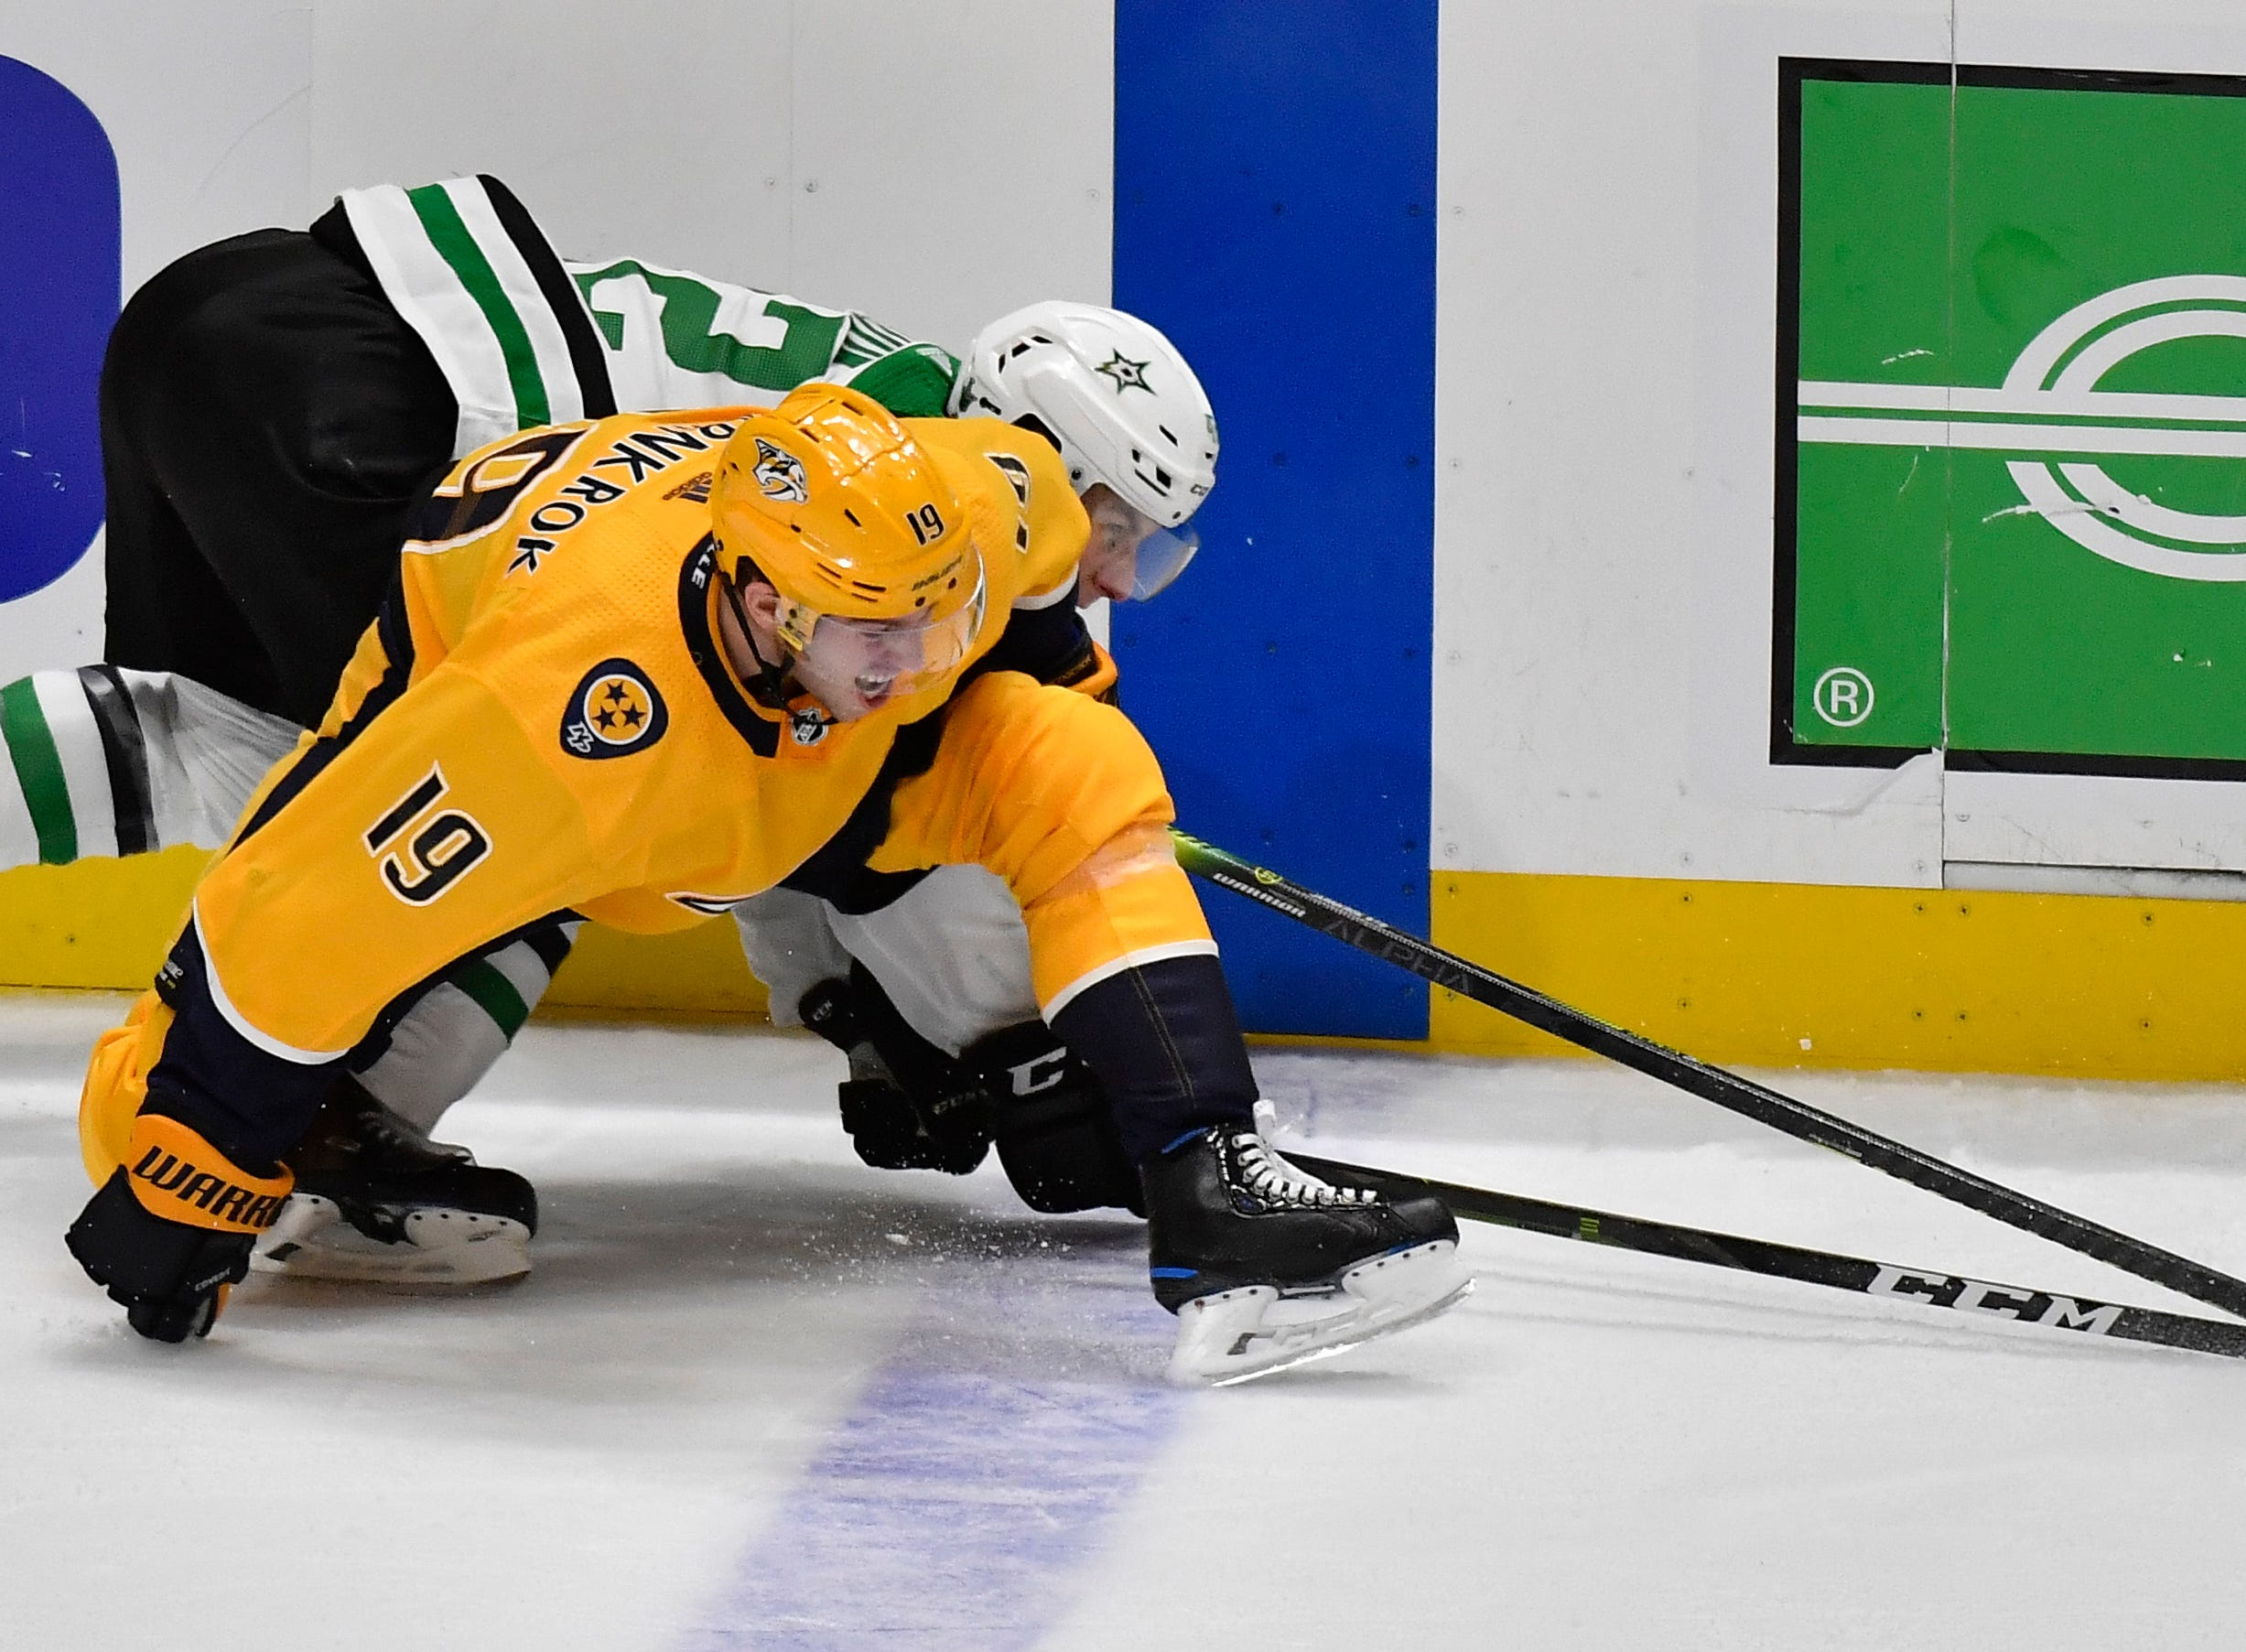 Nashville Predators center Calle Jarnkrok (19) and Dallas Stars defenseman Taylor Fedun (42) battle for the puck during the second period of the divisional semifinal game at Bridgestone Arena in Nashville, Tenn., Wednesday, April 10, 2019.